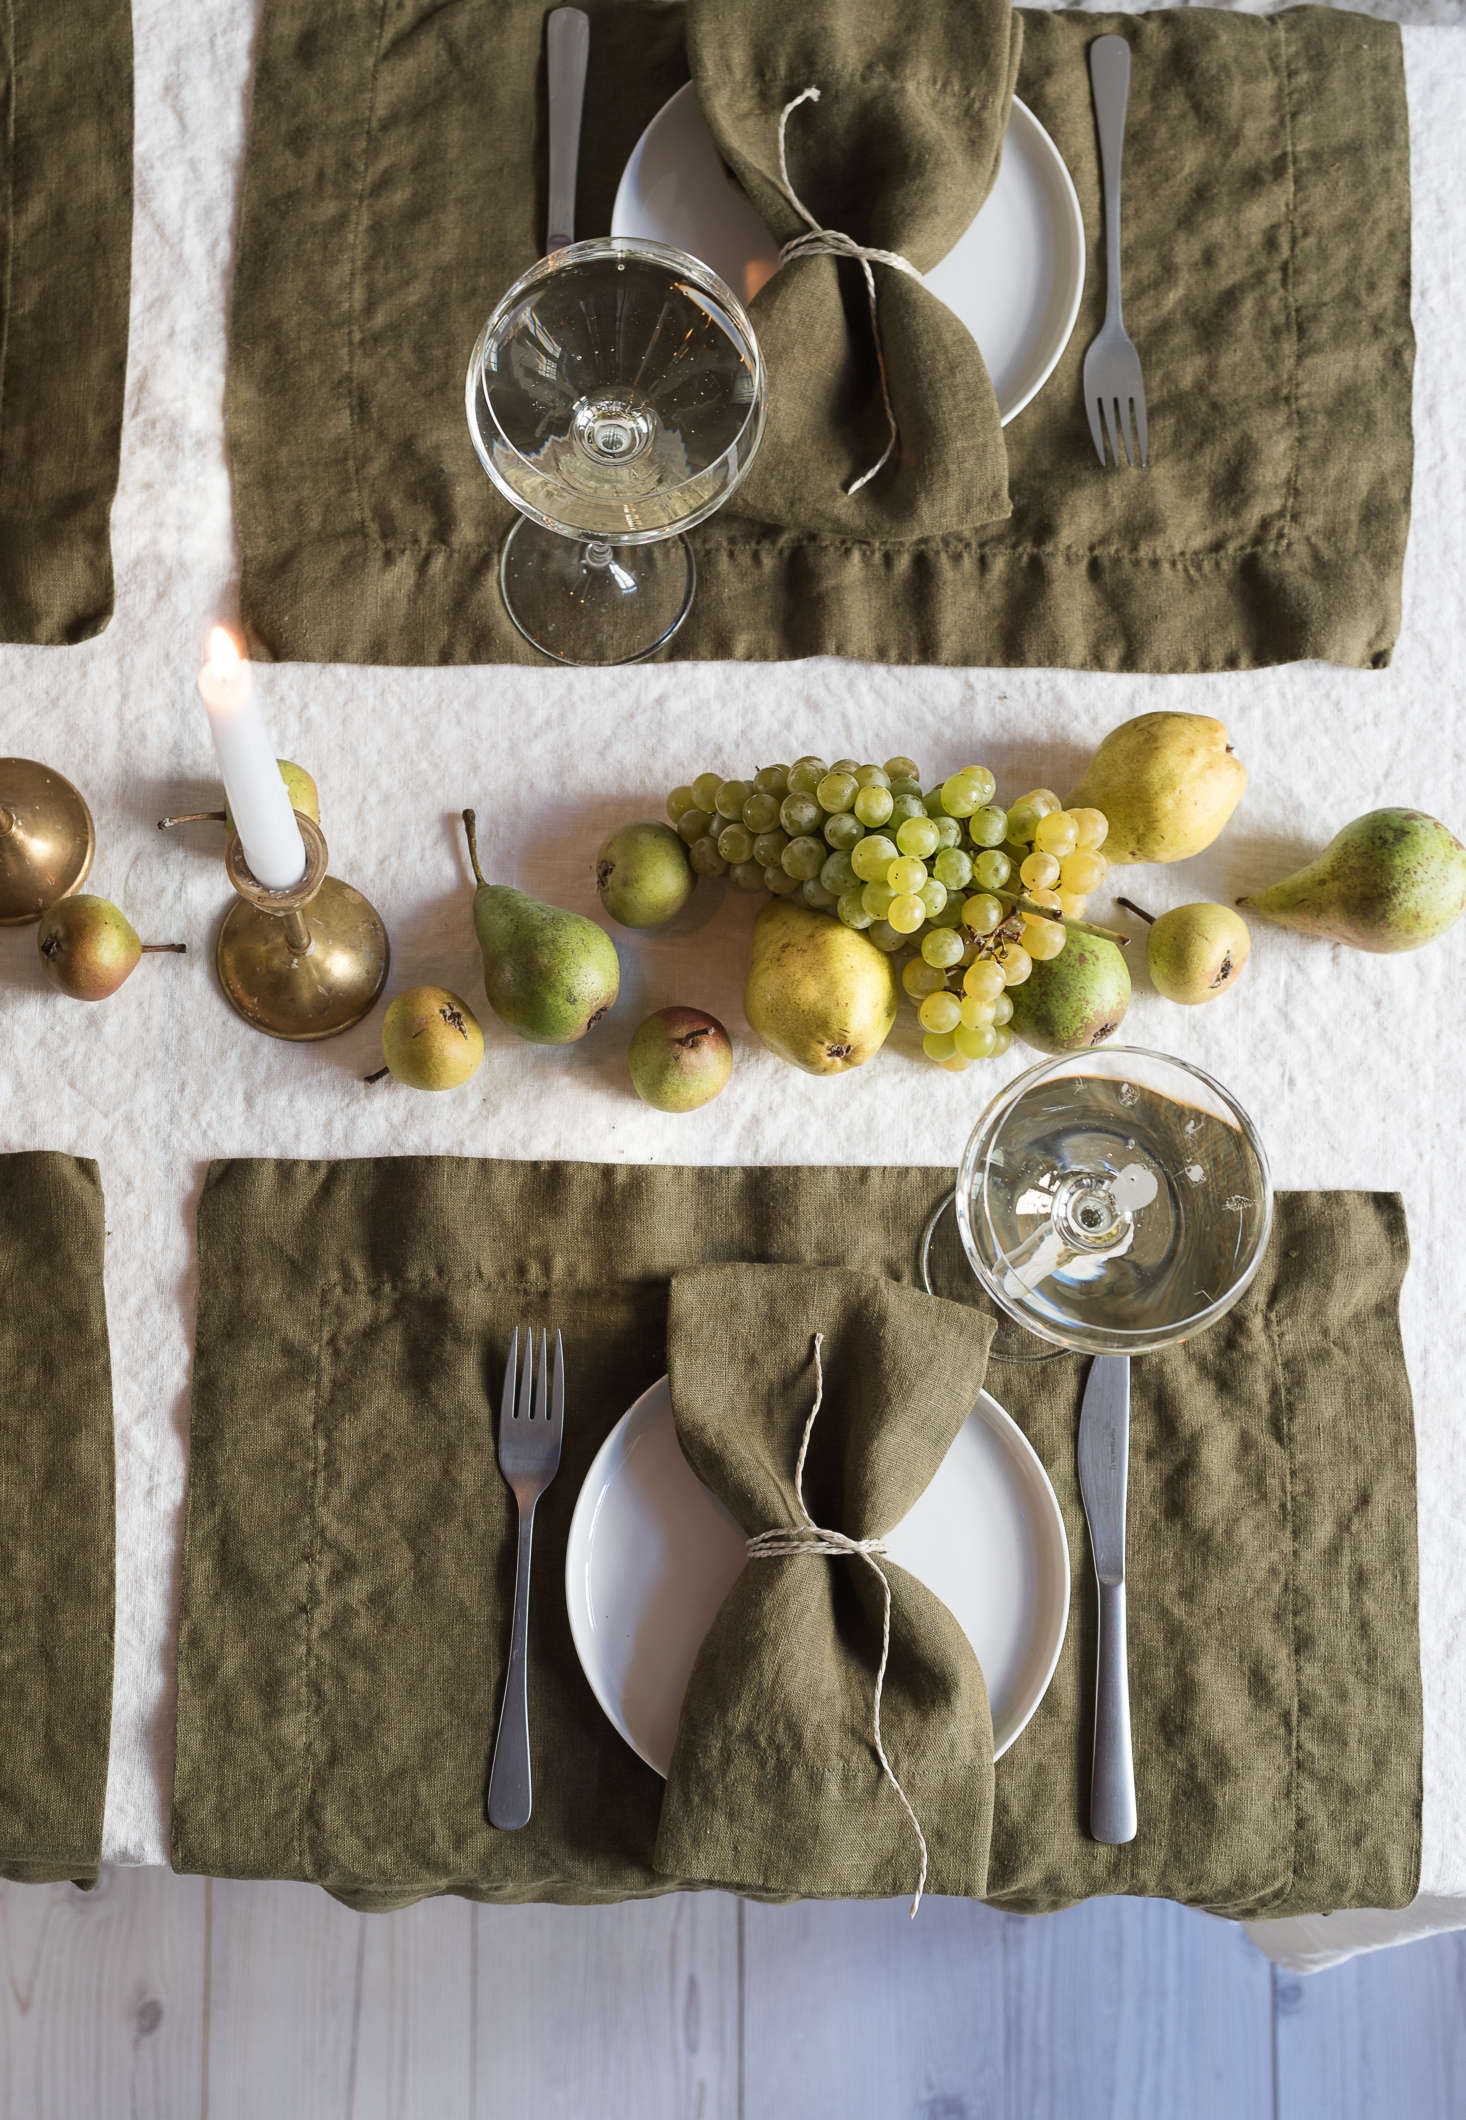 Fruit becomes a jewel-toned centerpiece when laid artfully down the center of the table.